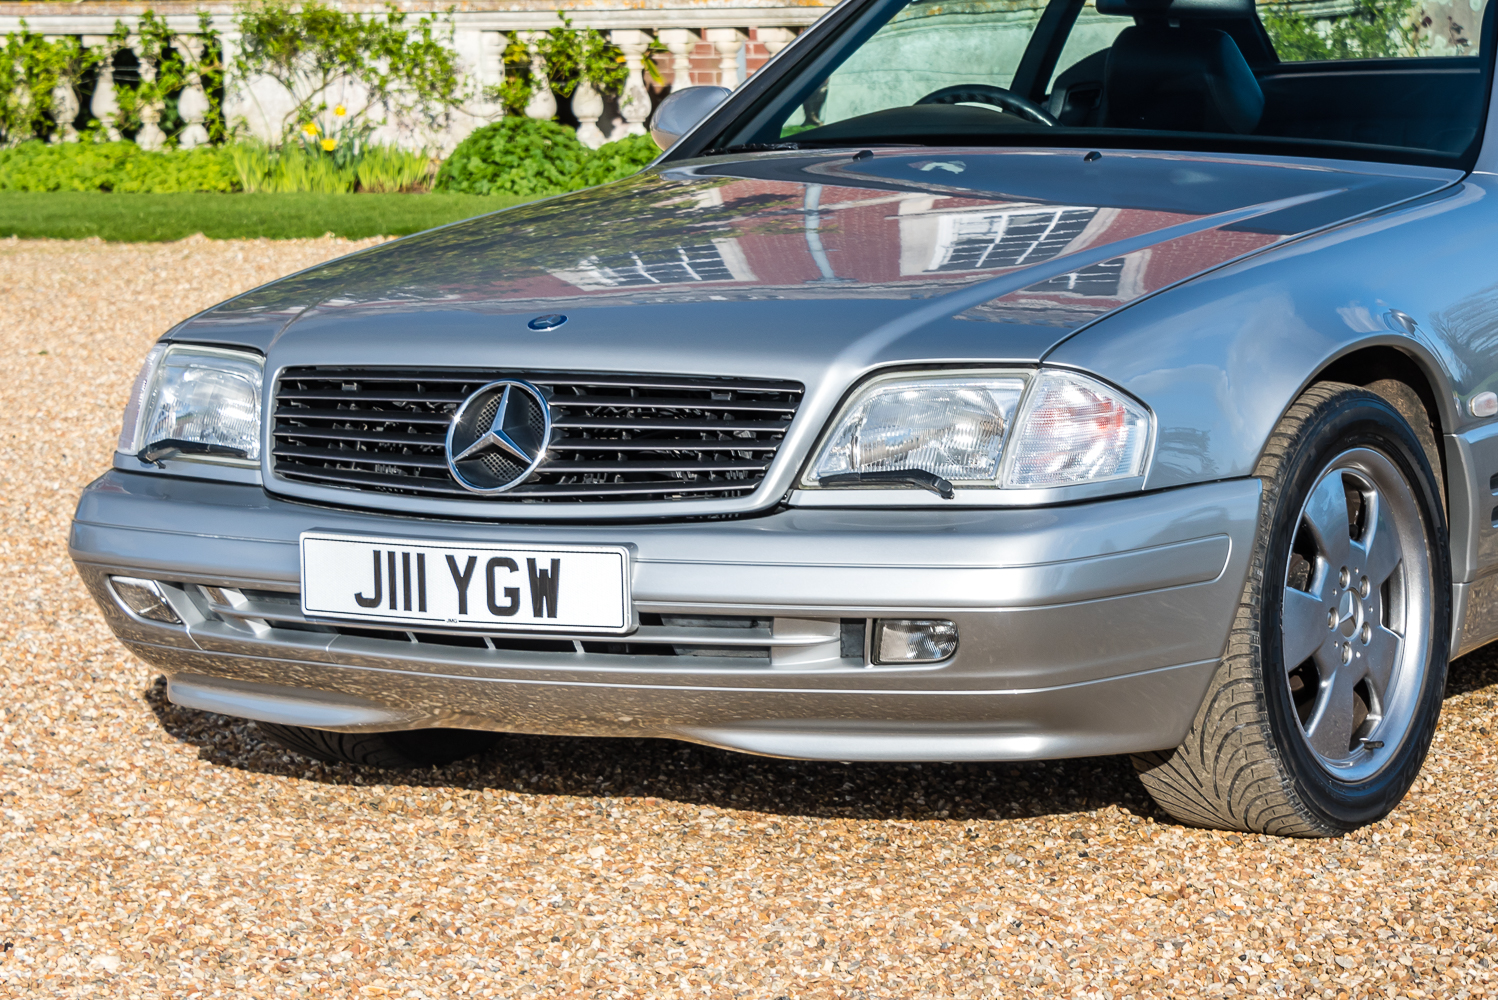 1999 mercedes benz sl320 stunning silver turnbull oliver for Used mercedes benz cars for sale